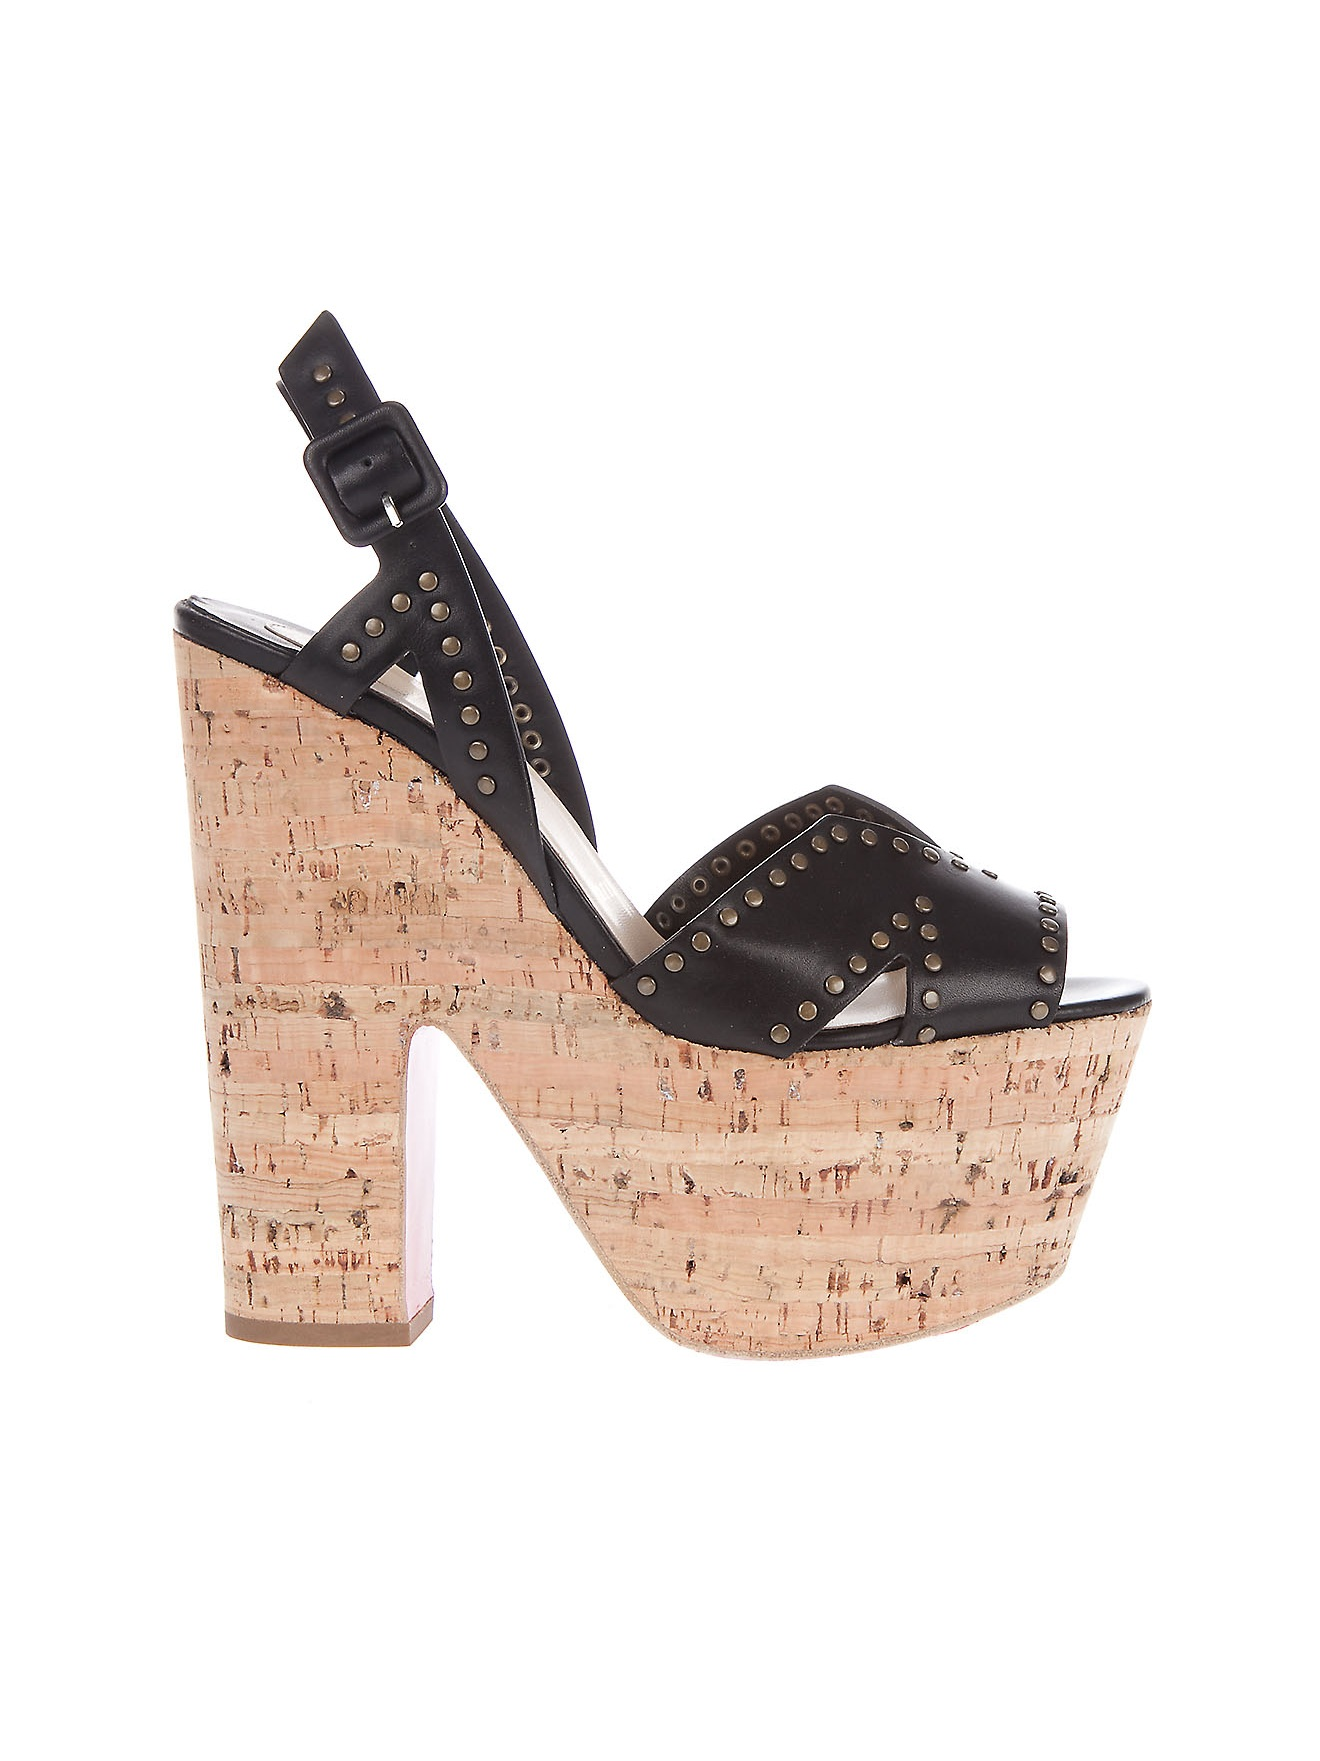 christian louboutin cork platform sandals - Bavilon Salon